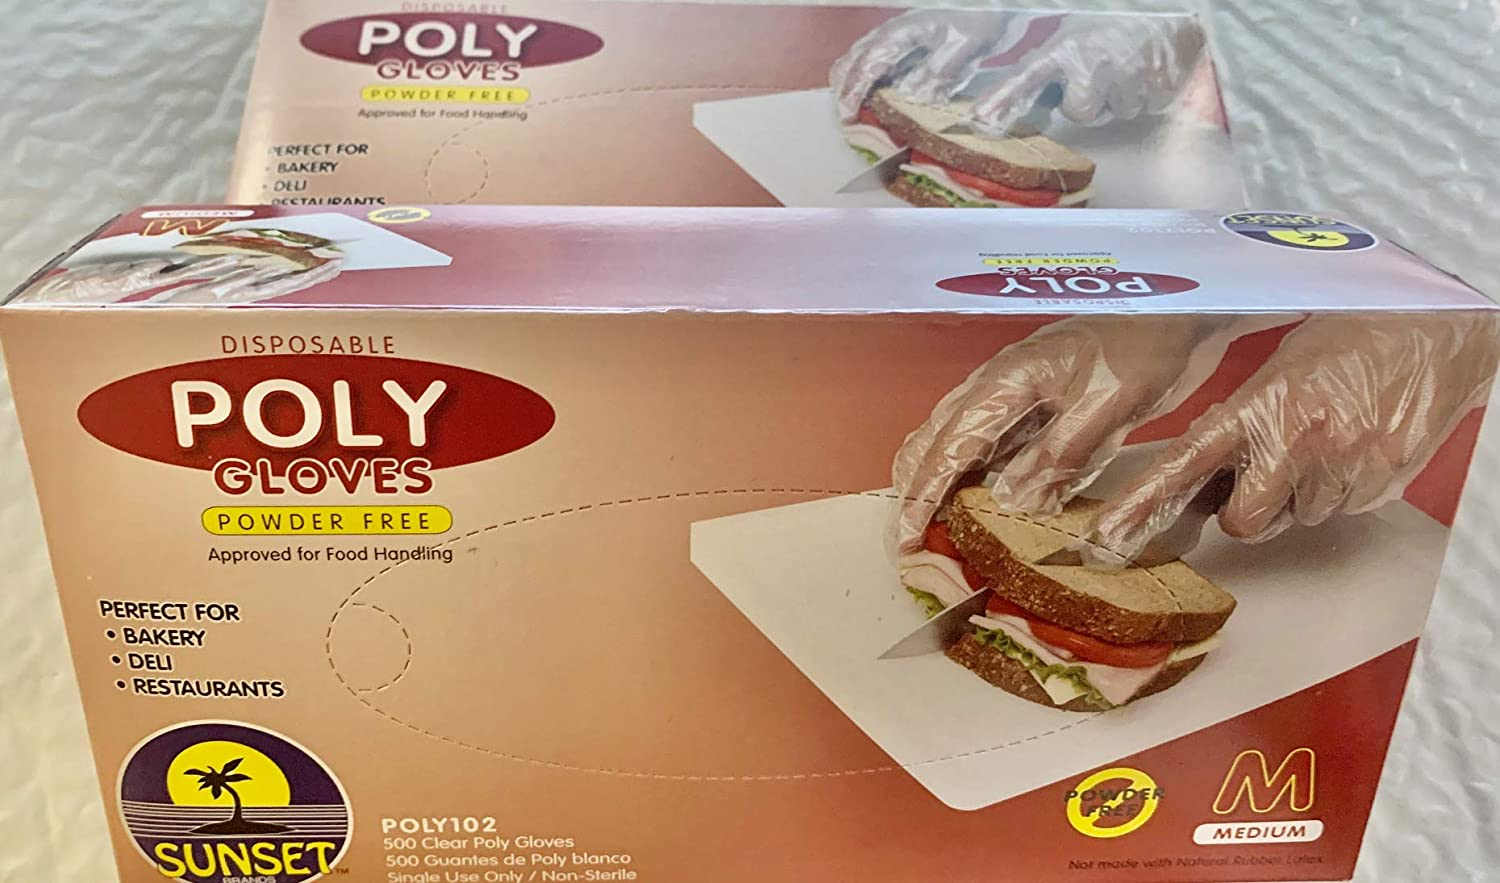 1000 Medium Size Disposable Poly Gloves, Powder Free, Smooth Touch, Food Service Grade, Polyethylene, Non-Sterile [2x500 Pack]